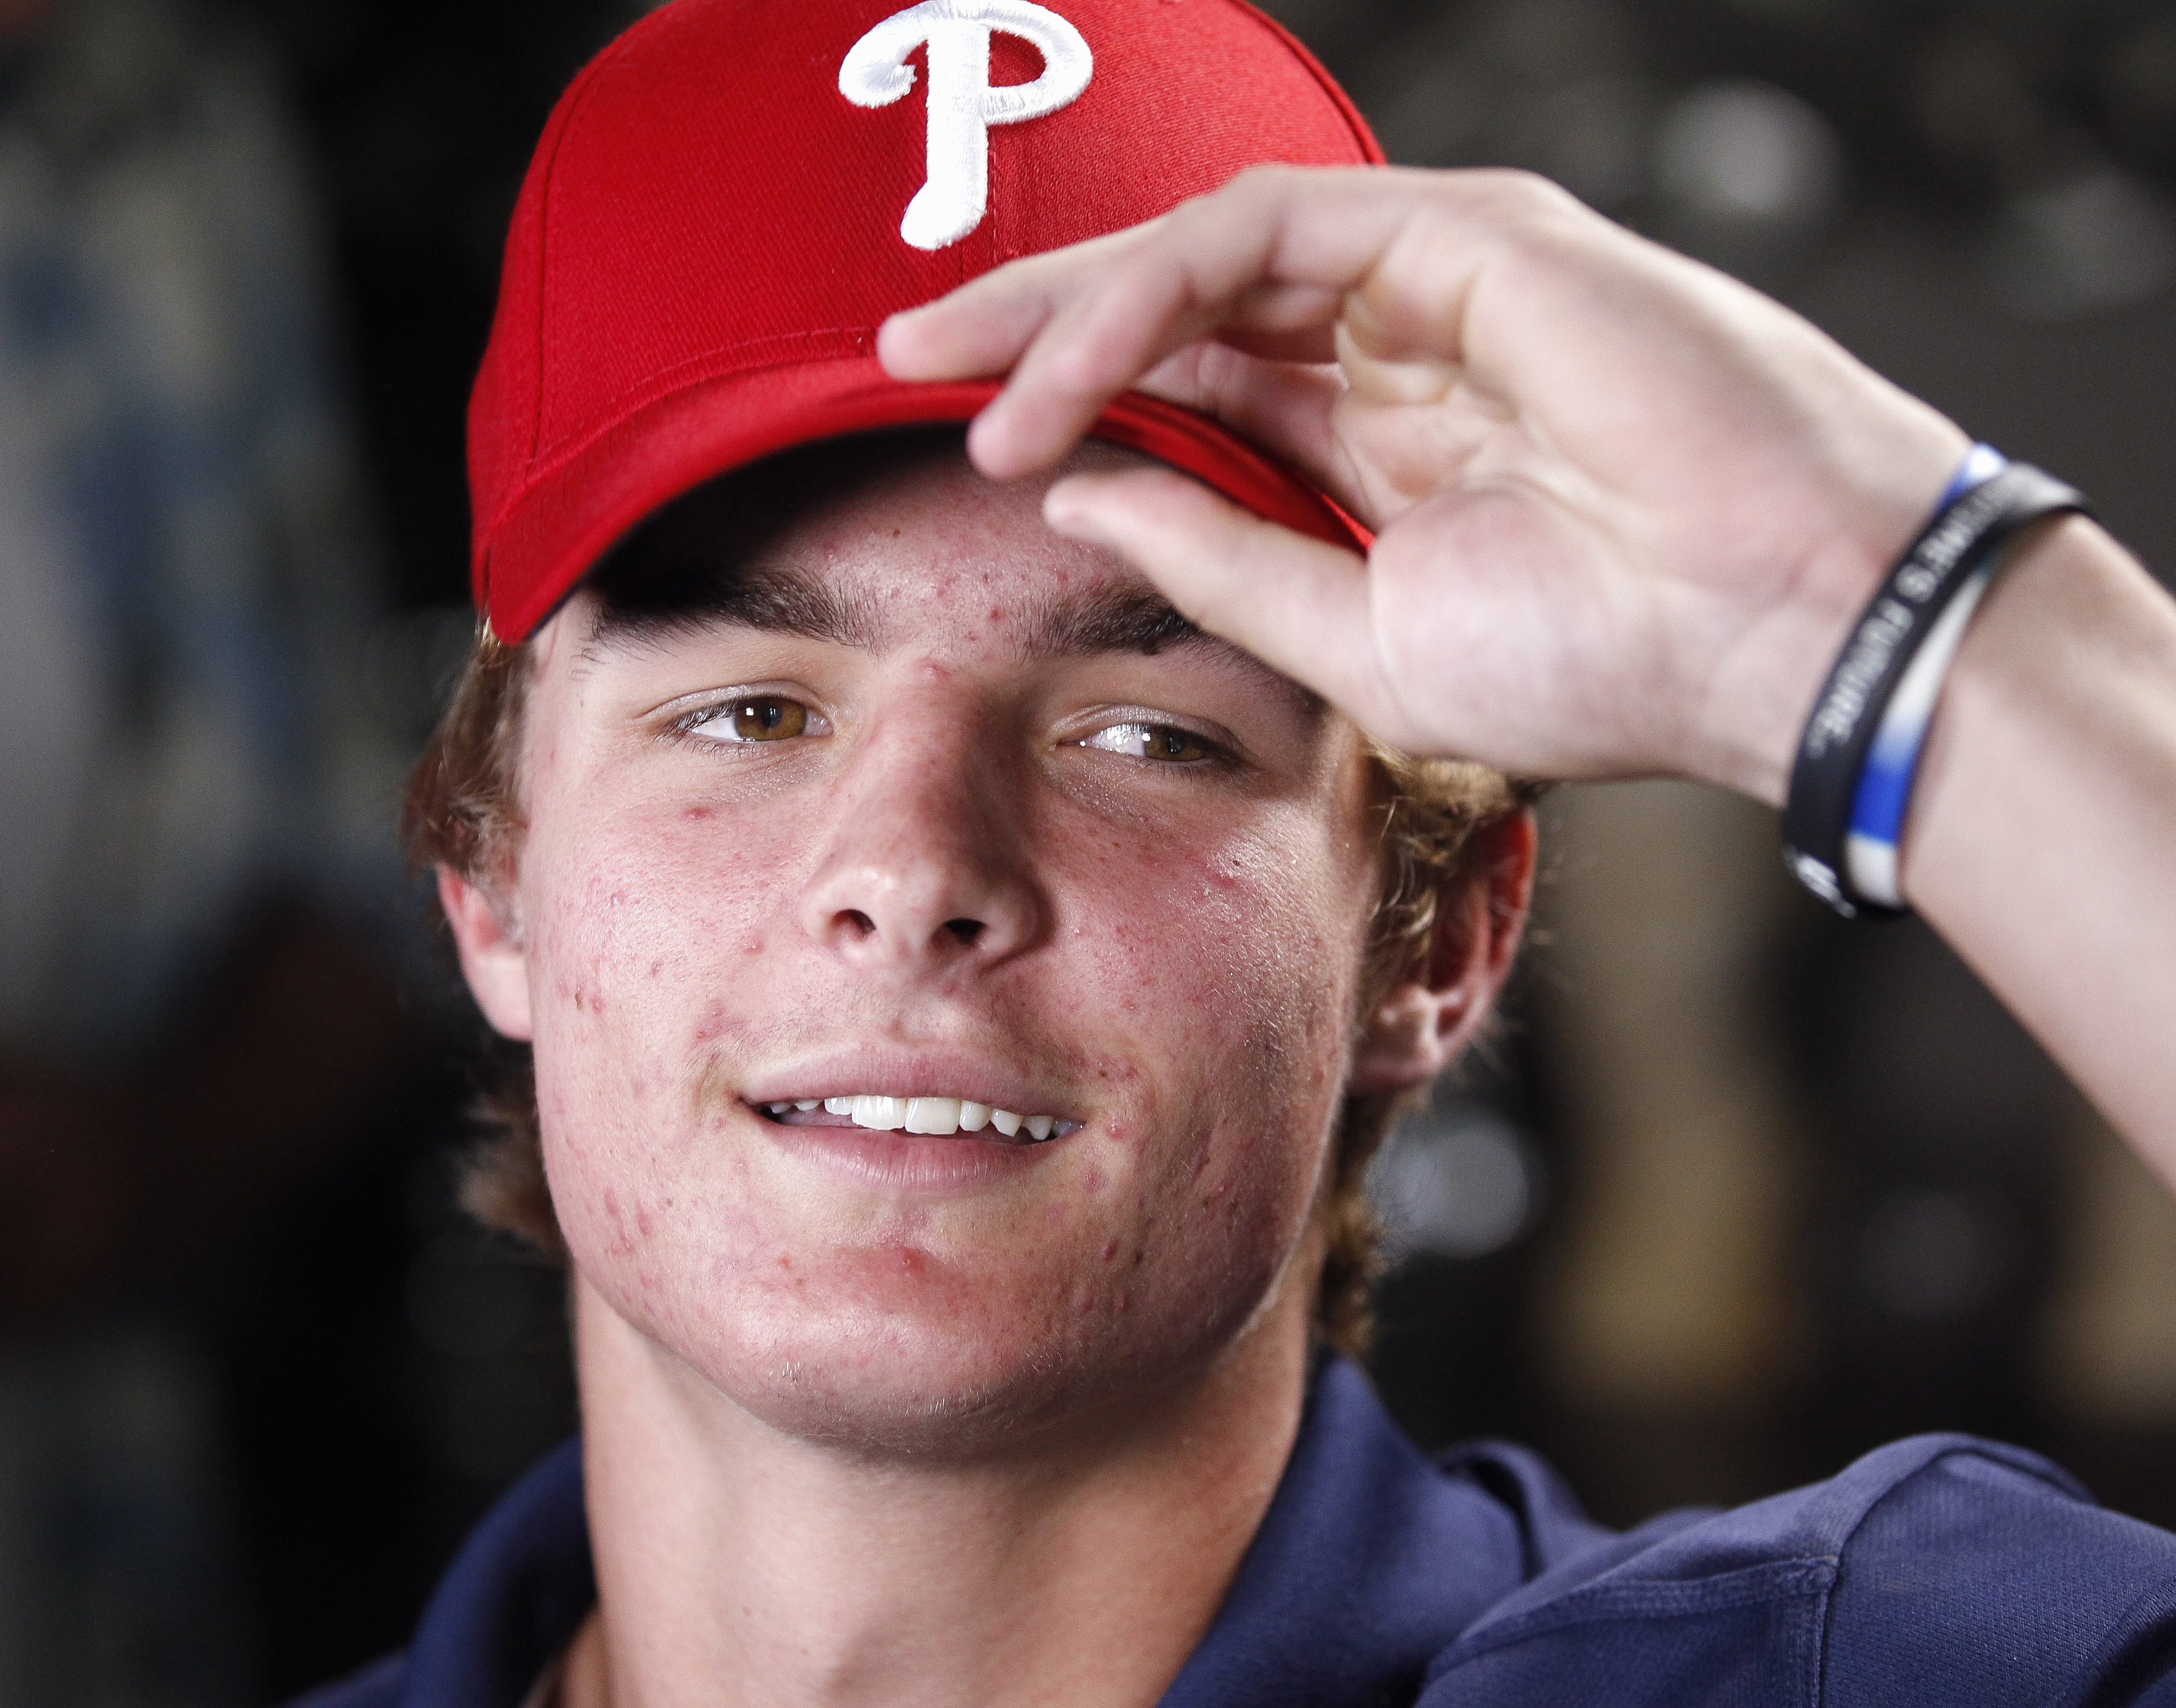 La Costa Canyon baseball player Mickey Moniak puts on a Philadelphia Phillies cap just after it was announced that the Phillies had chosen Moniak with the top pick in the Major League Baseball draft, at Moniak's aunt's house in Carlsbad, Calif., on Thursd